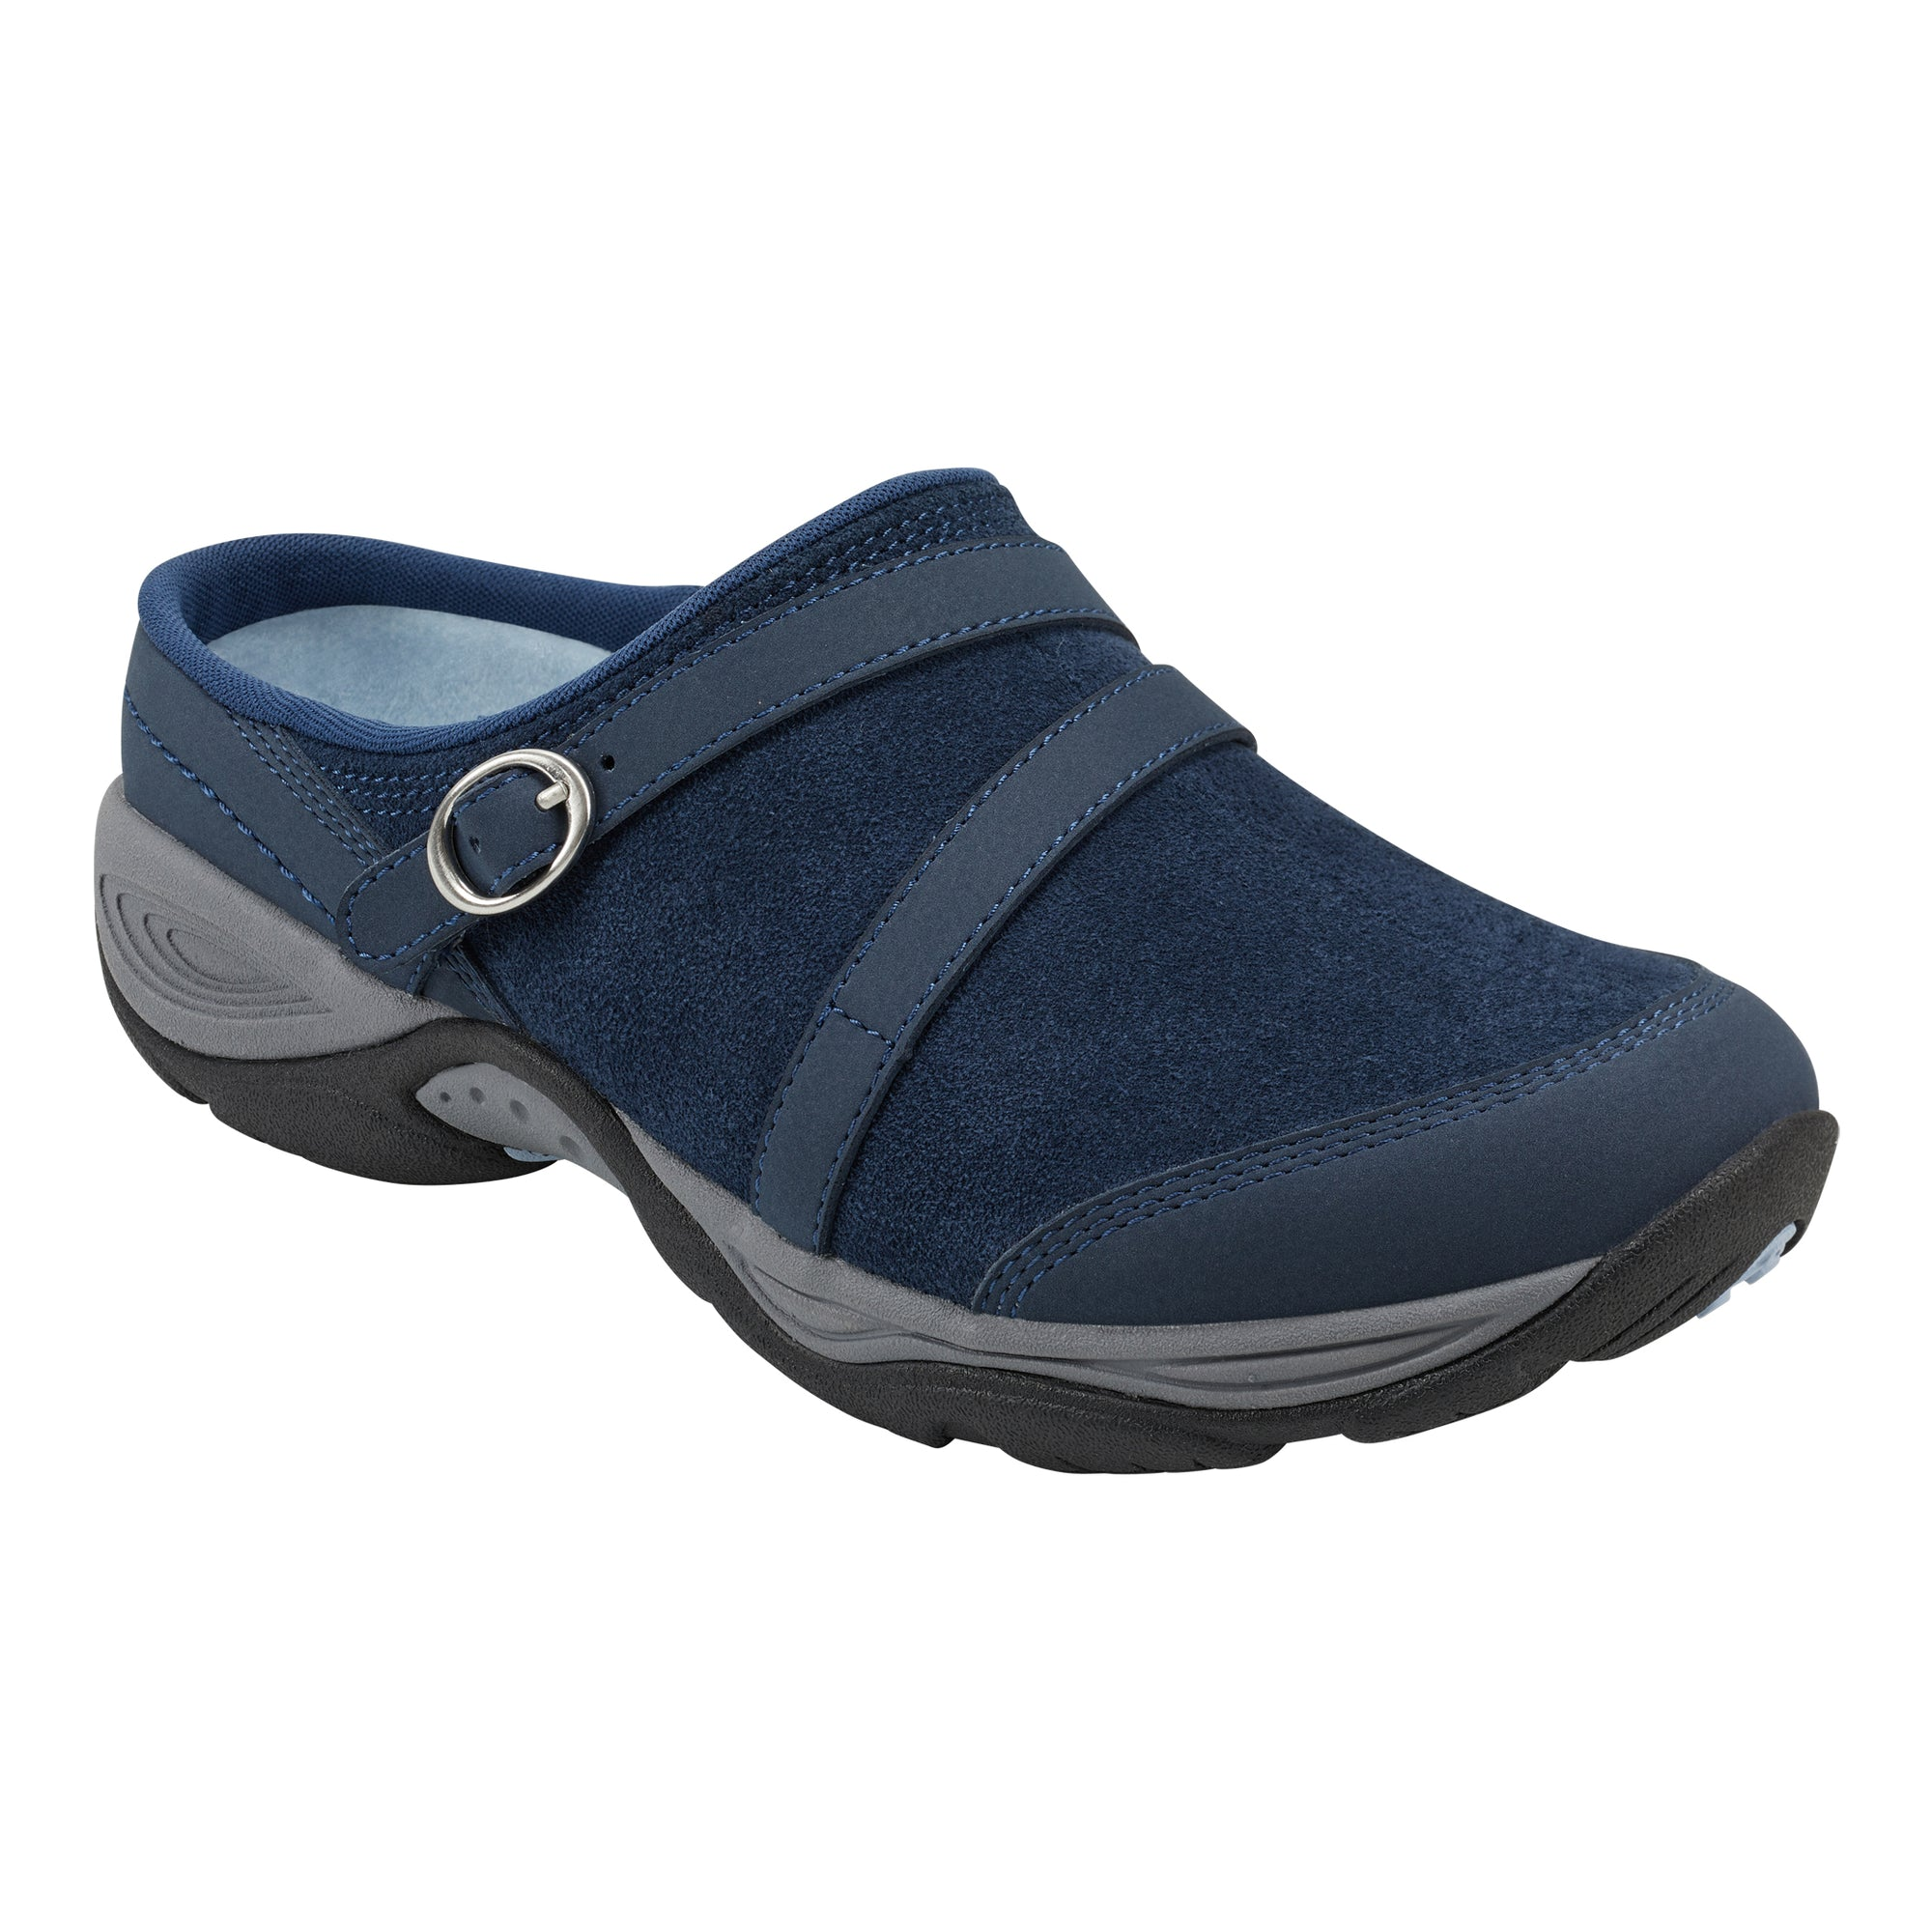 Equinox Clogs